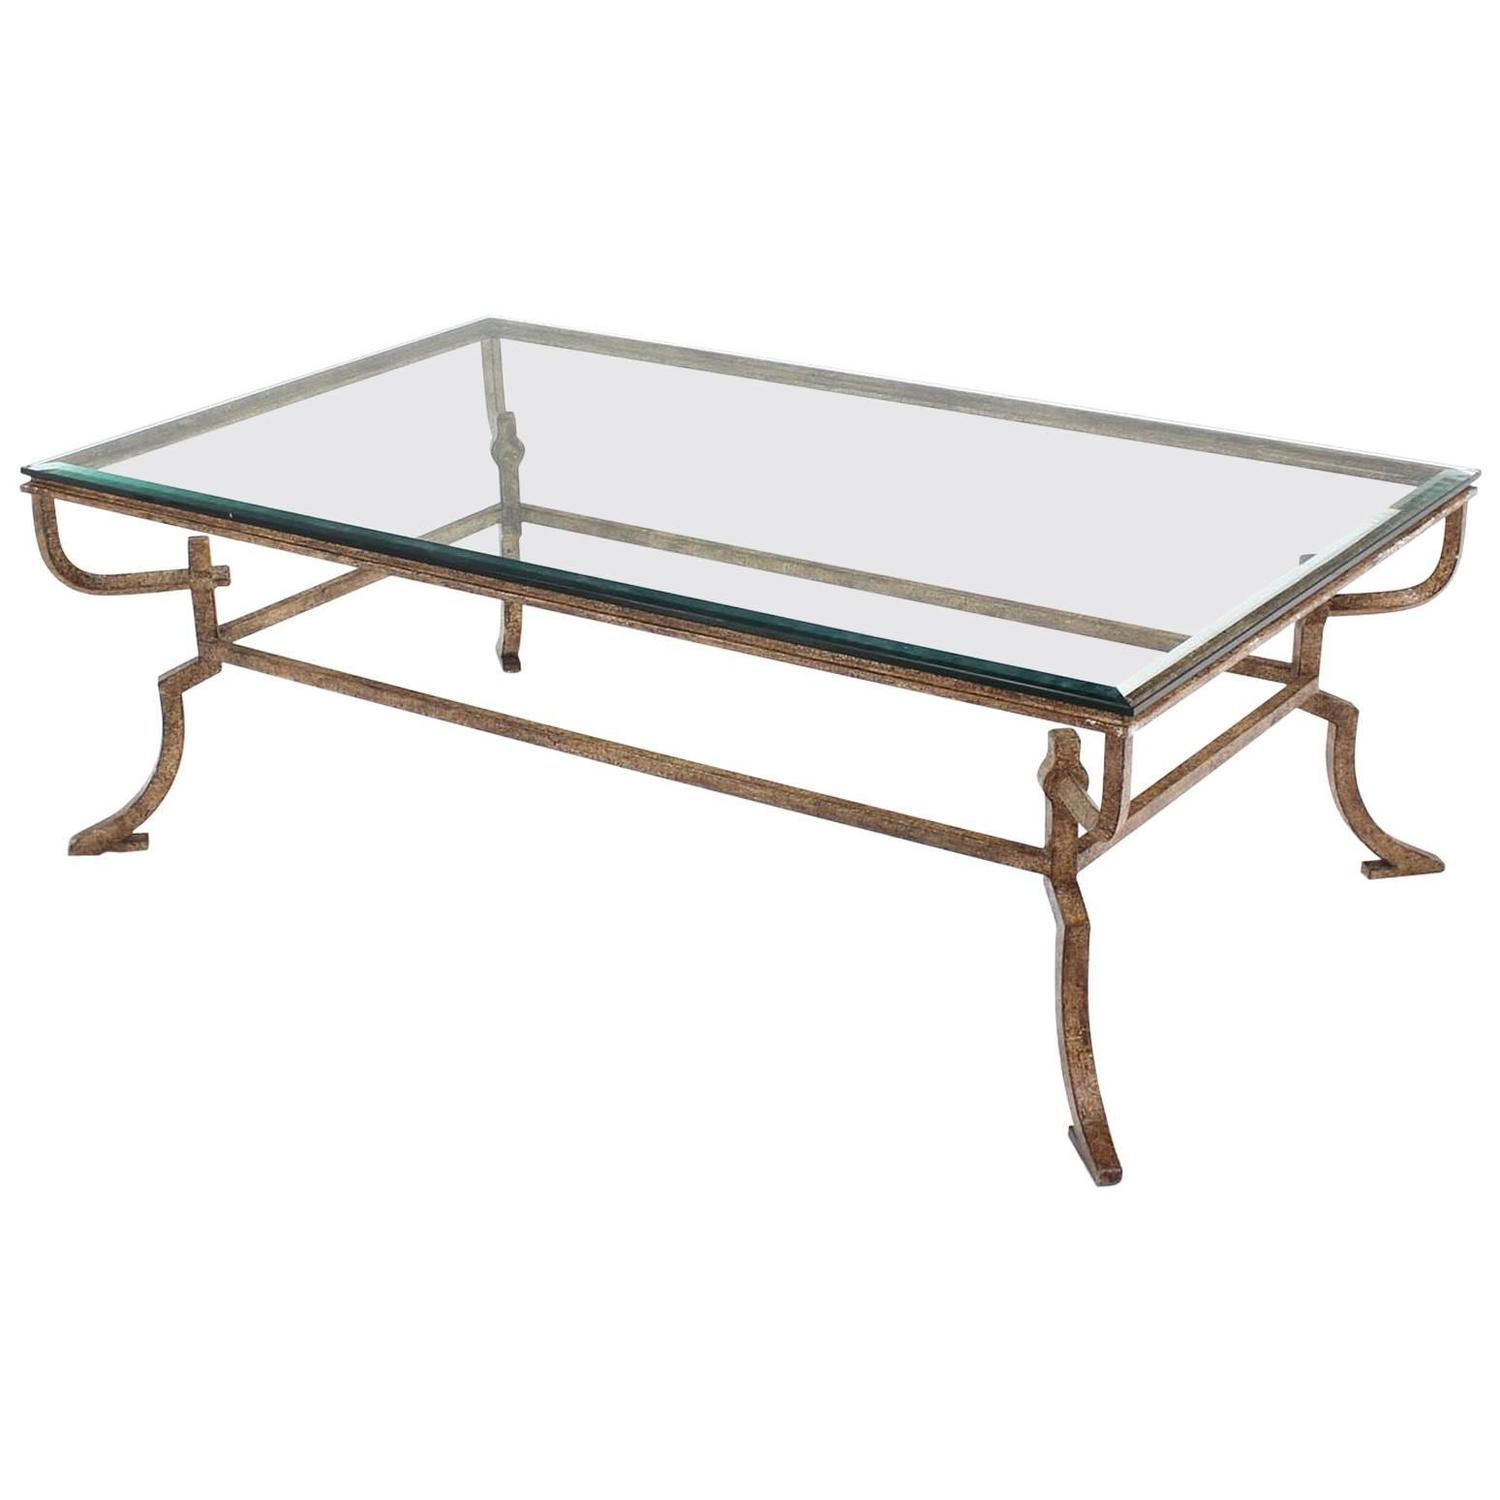 Heavy wrought iron studio work base glass top coffee table for Heavy glass coffee tables